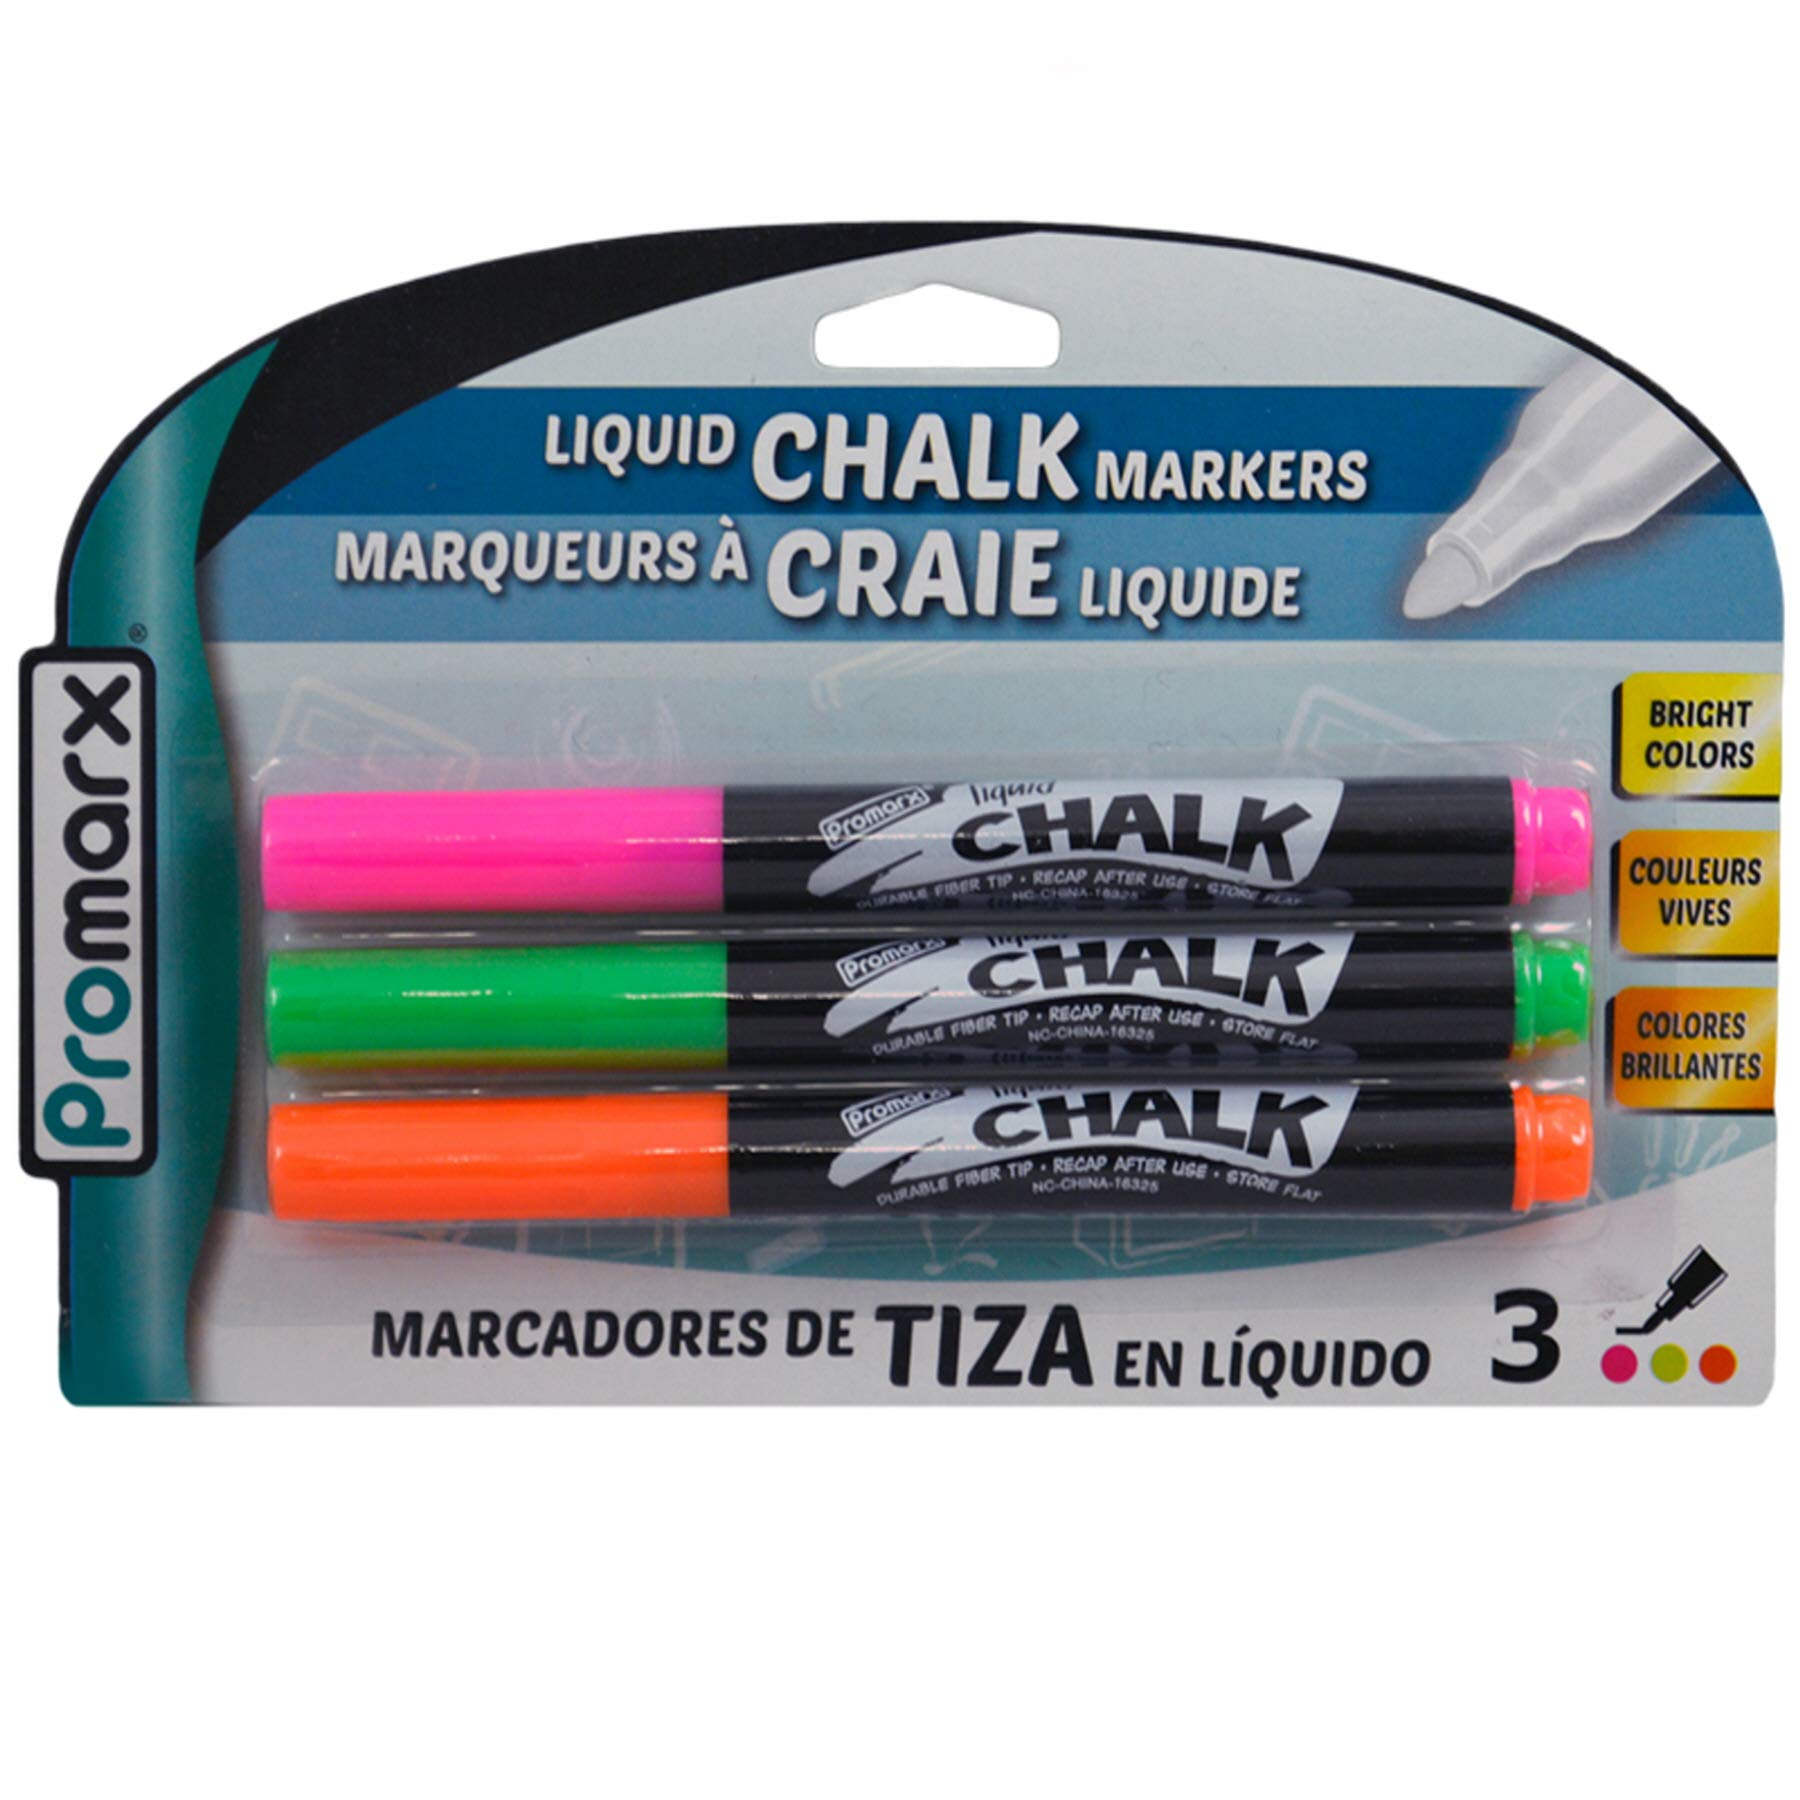 (Pack of 48, 144 Ct) Promarx Liquid Chalk Markers Pink Green Orange 3ct by Unknown